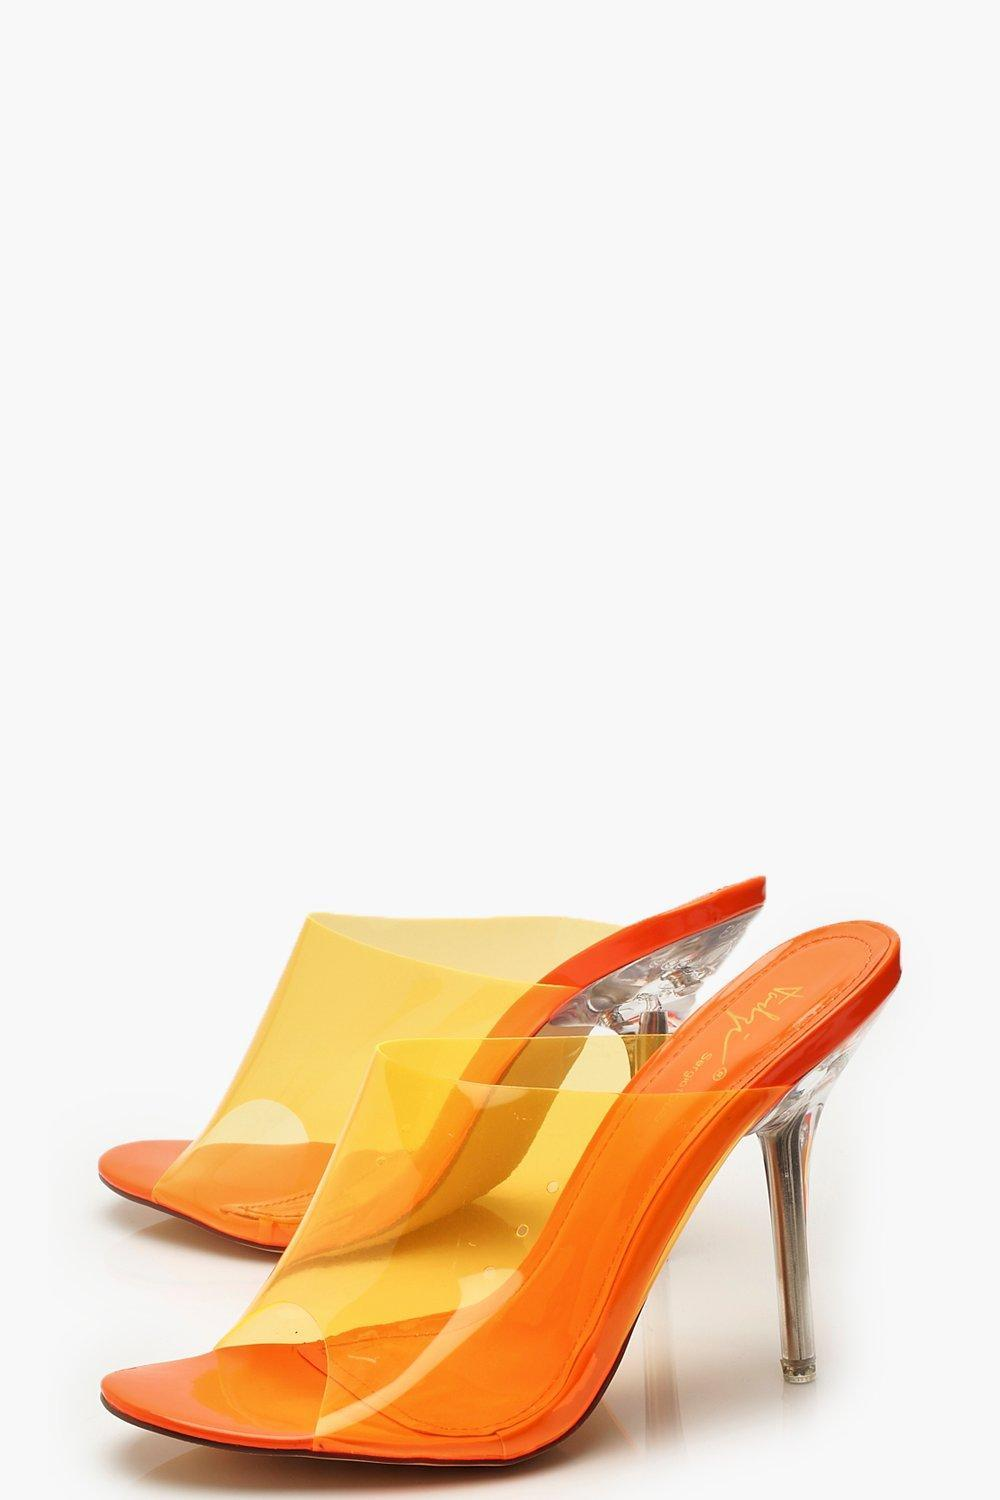 486bb681ad8b Boohoo - Orange Clear Heel Peeptoe Mules - Lyst. View fullscreen